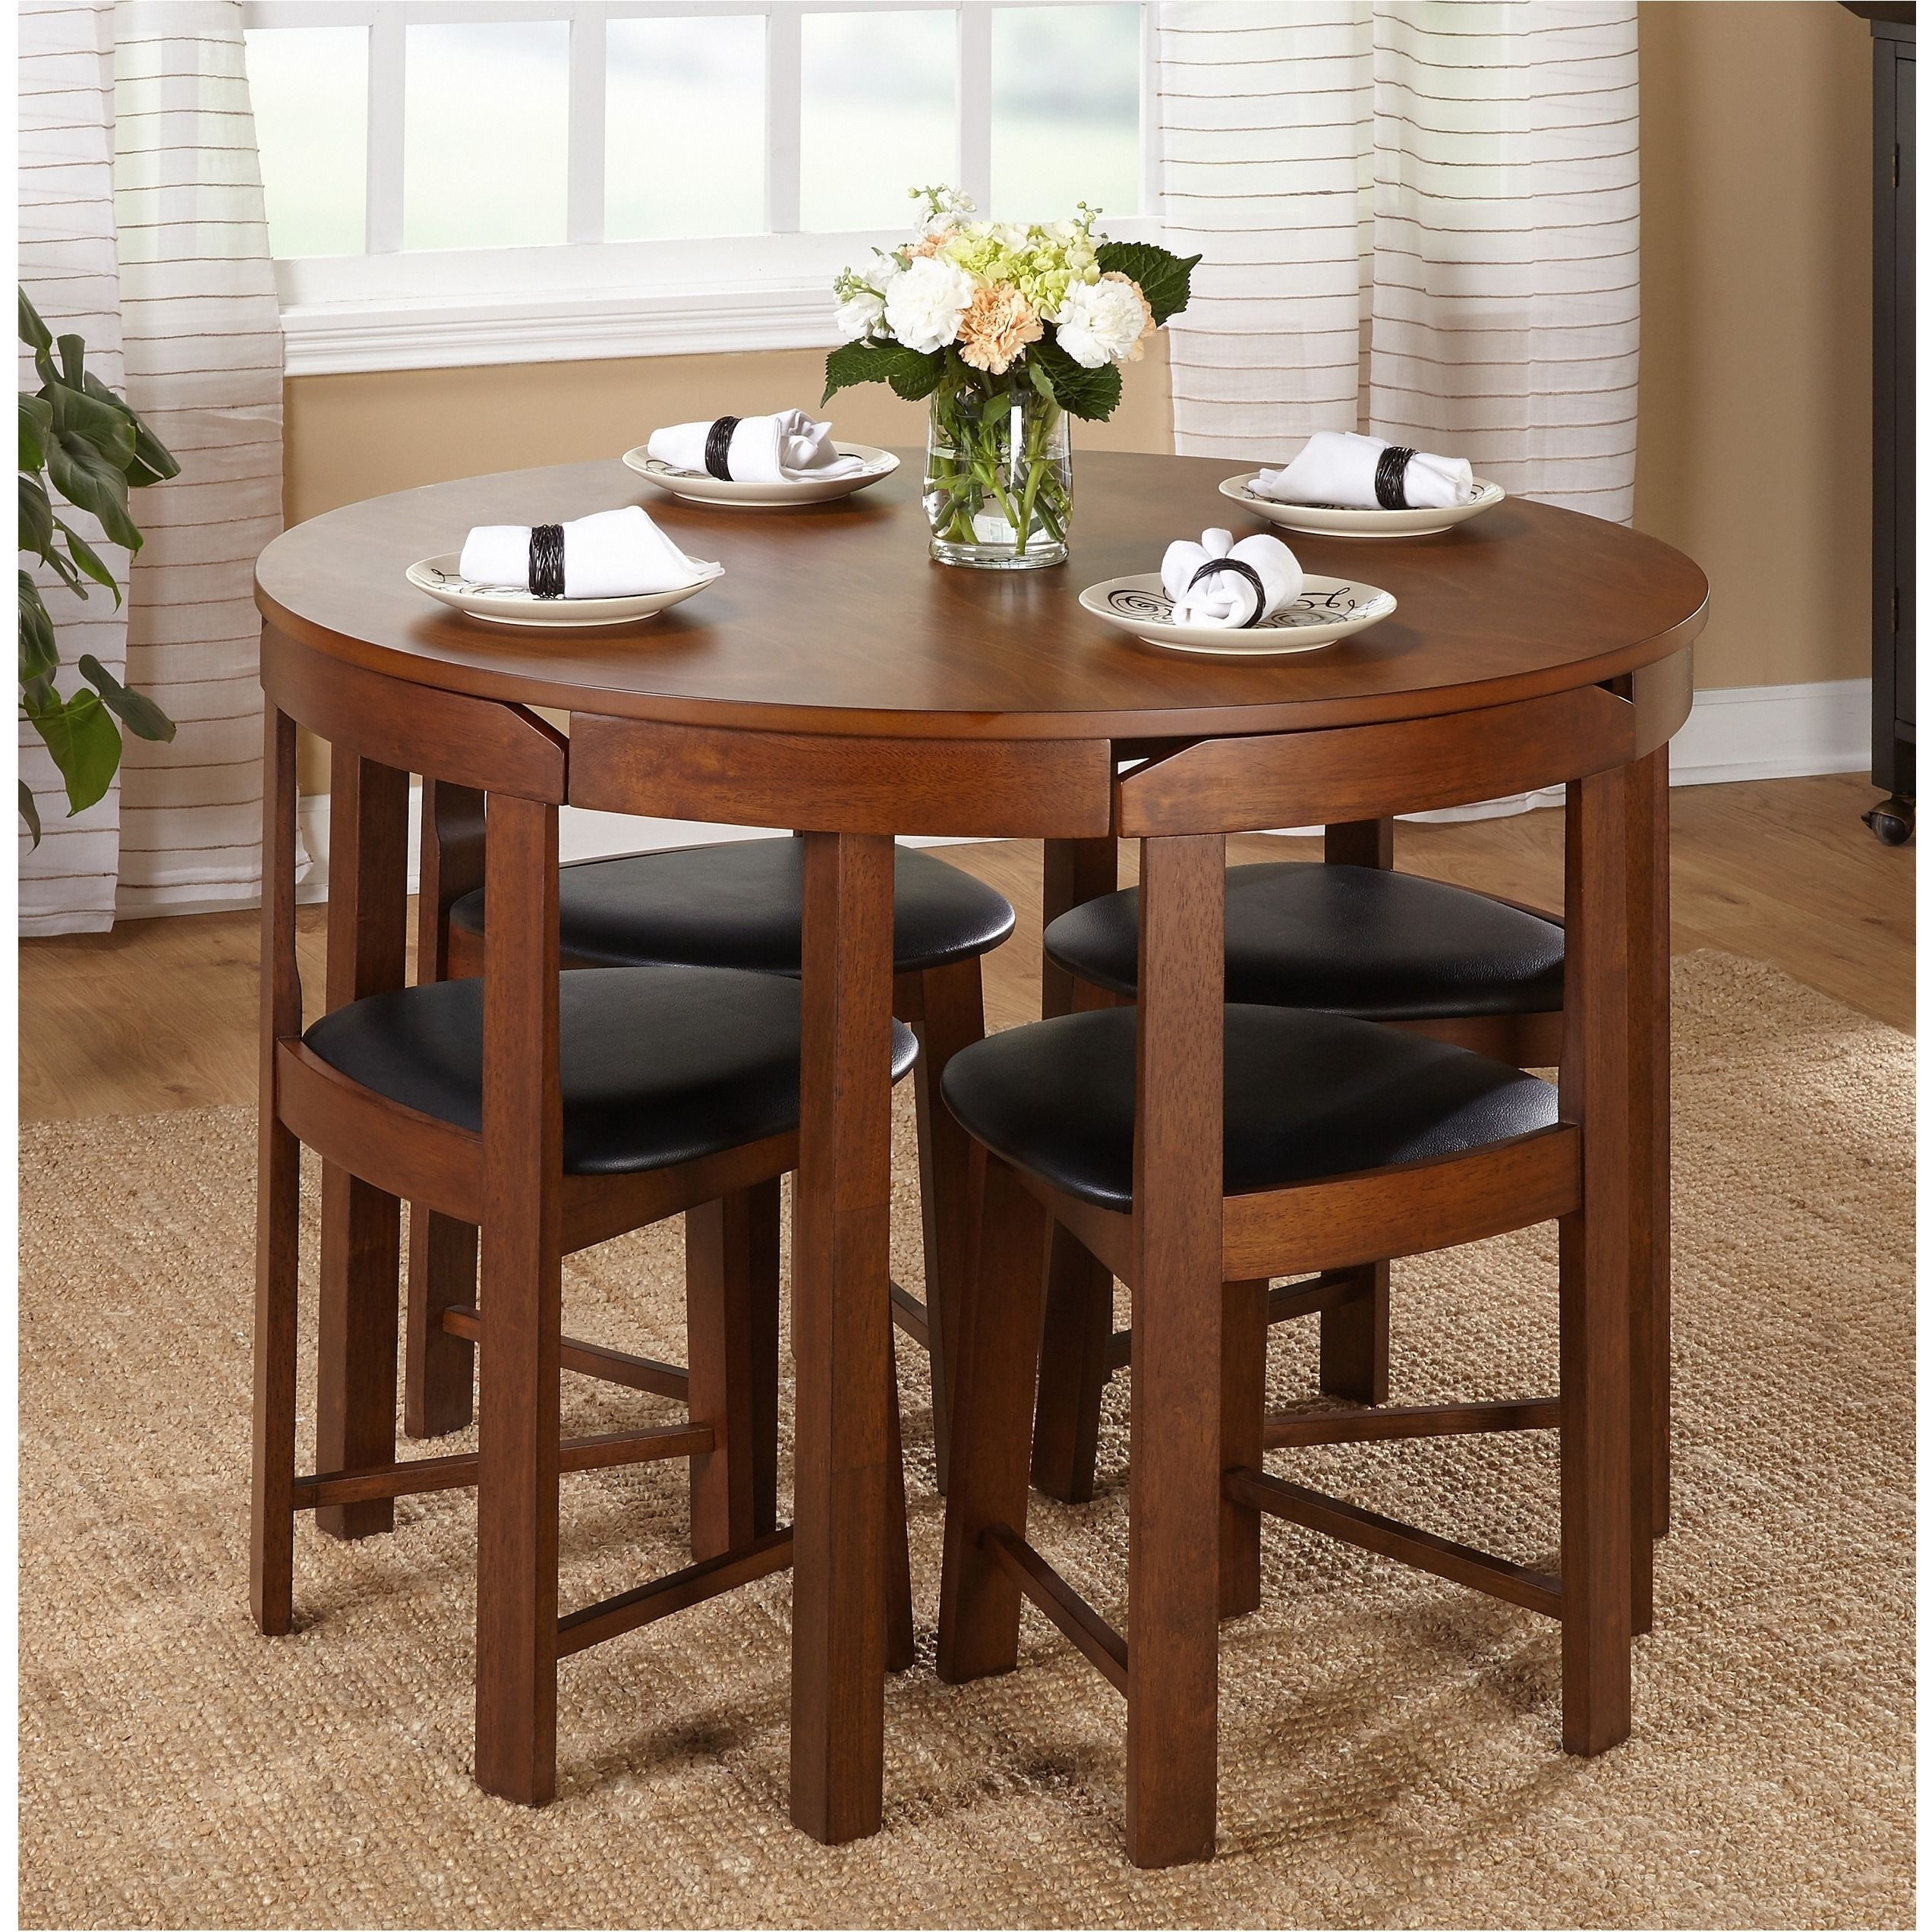 Small Round White Dining Tables Intended For Popular Marvelous Furniture Small Round Glass Dining Table Sets With Leaves (View 20 of 25)